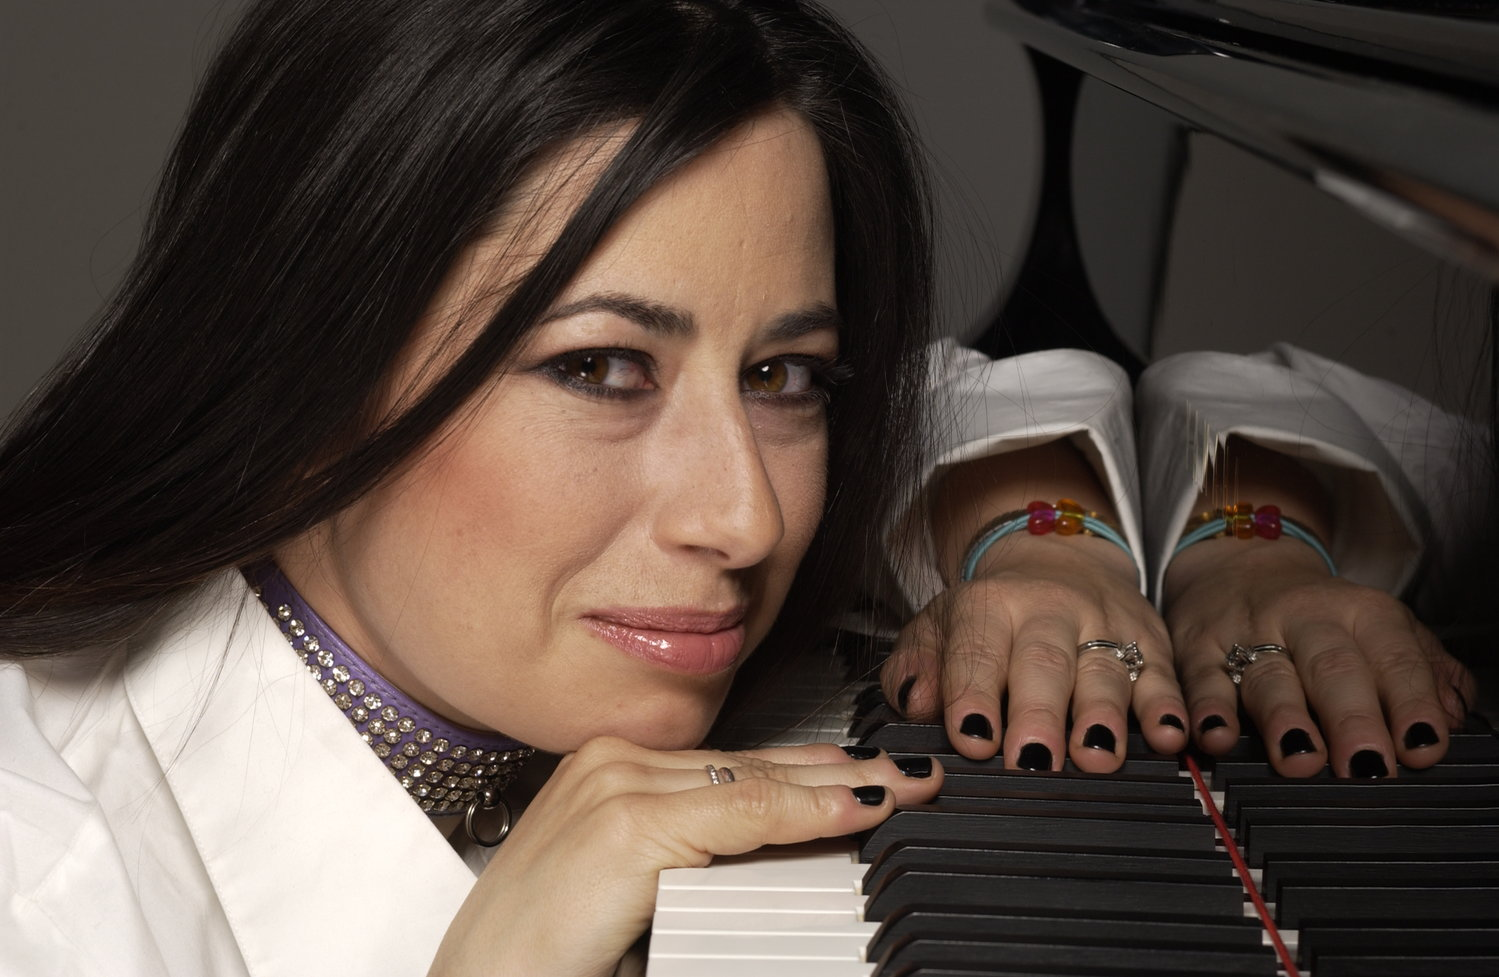 The acclaimed keyboardist Rachel Z is among the renowned performers participating in this year's festival.